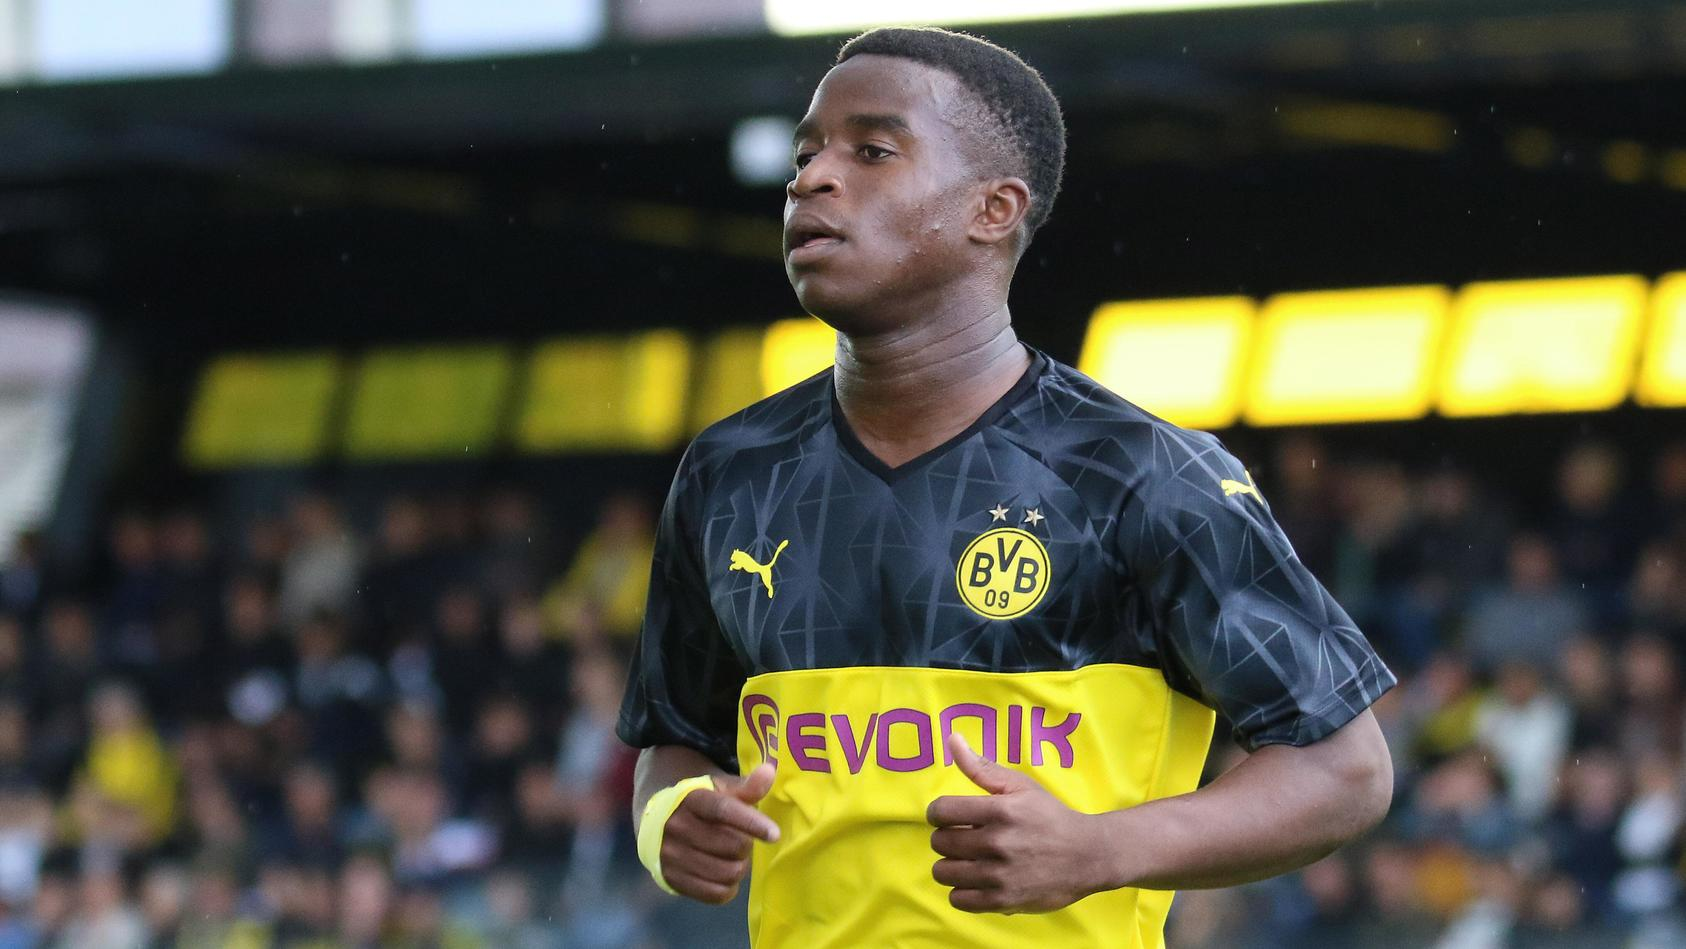 Fußball UEFA Youth League 1 Spieltag Borussia Dortmund U19 FC Barcelona Barca U19 am 31 08 2019